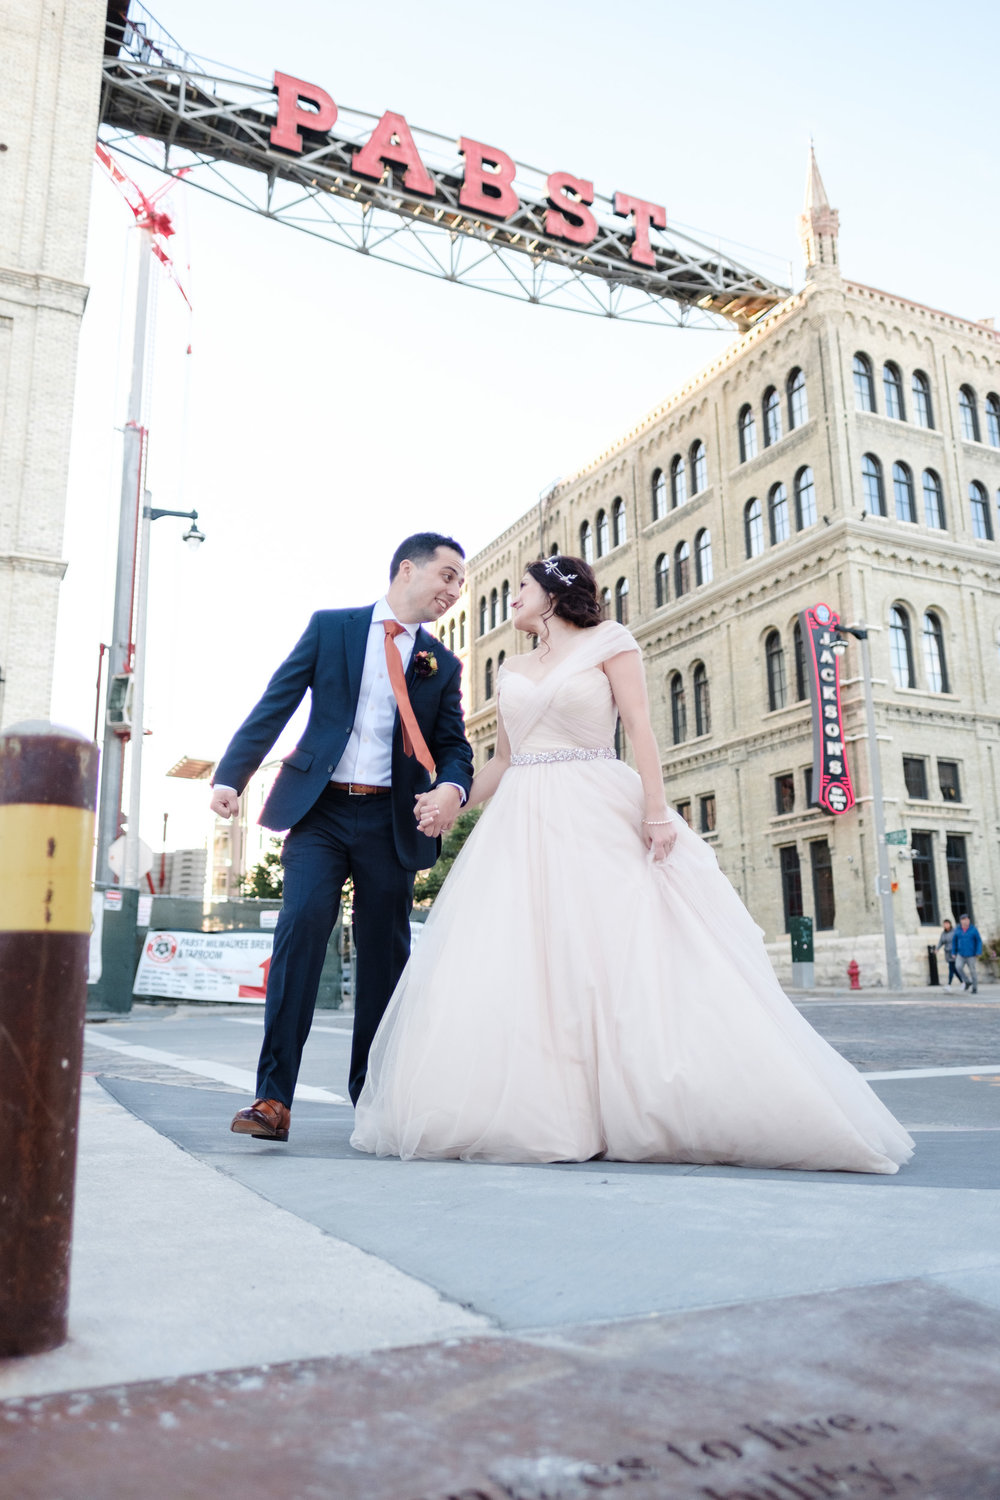 Bride and groom laugh and walk while holding hands in front of neon Pabst sign at Pabst best place in downtown Milwaukee Wisconsin.